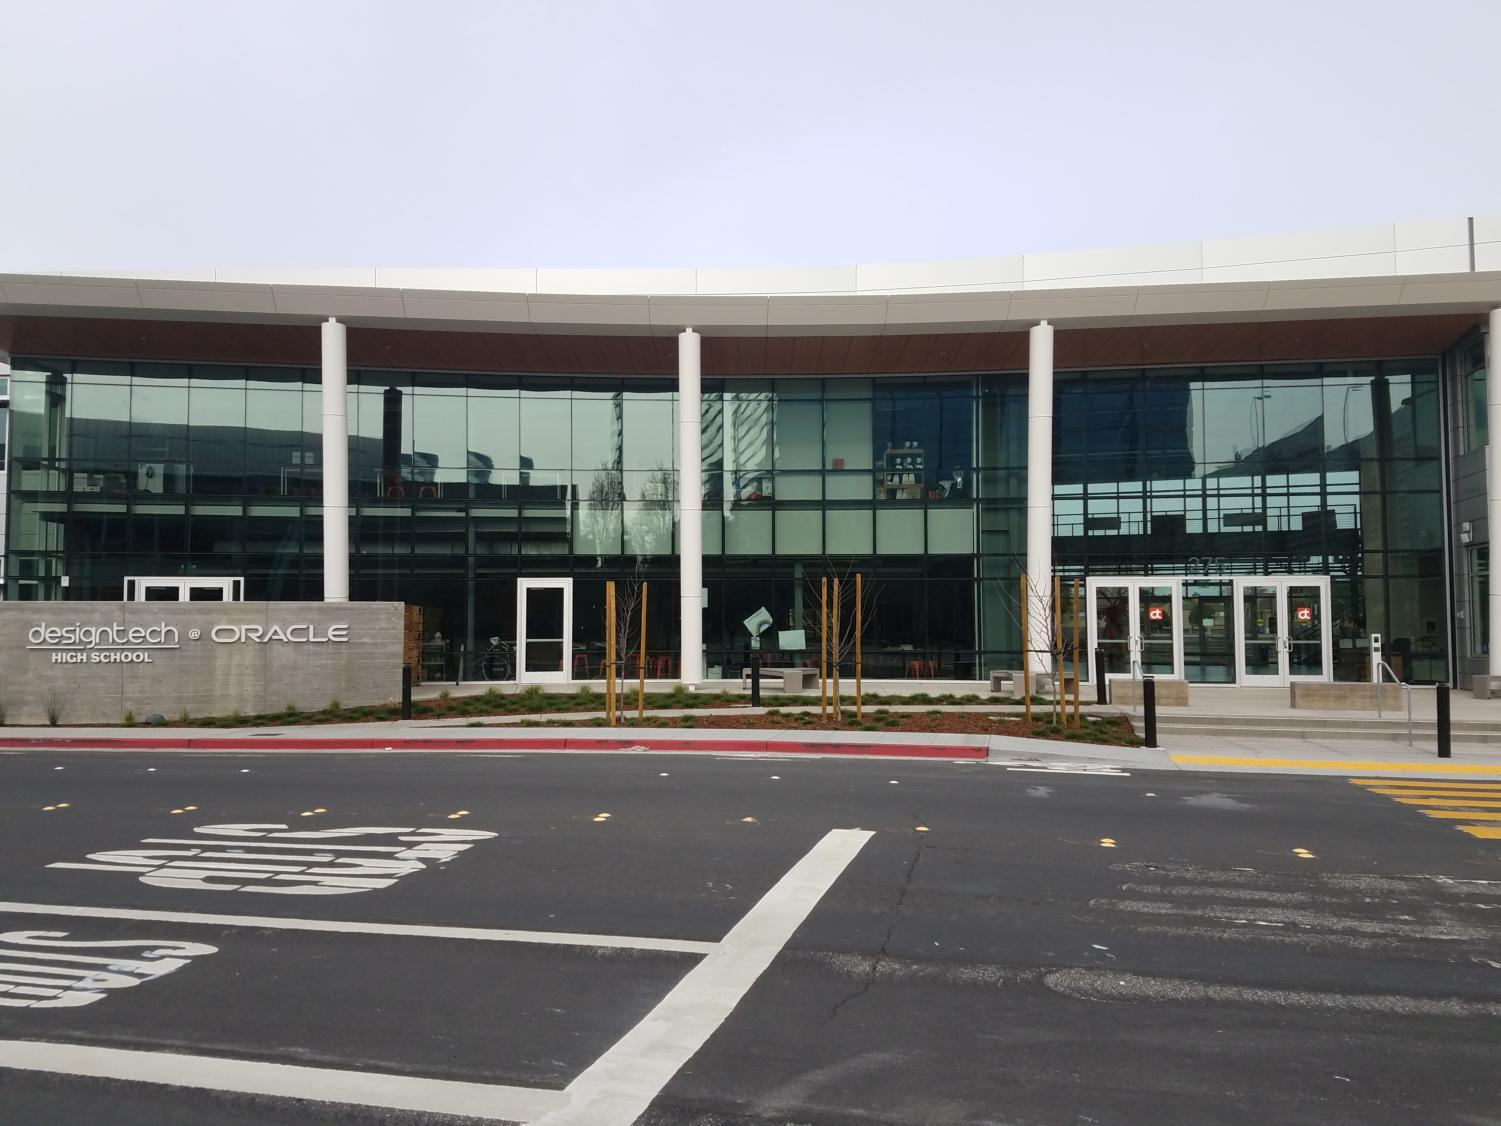 The+entrance+to+the+Design+Tech+new+building+at+275+Oracle+Pkwy%2C+Redwood+City%2C+CA.